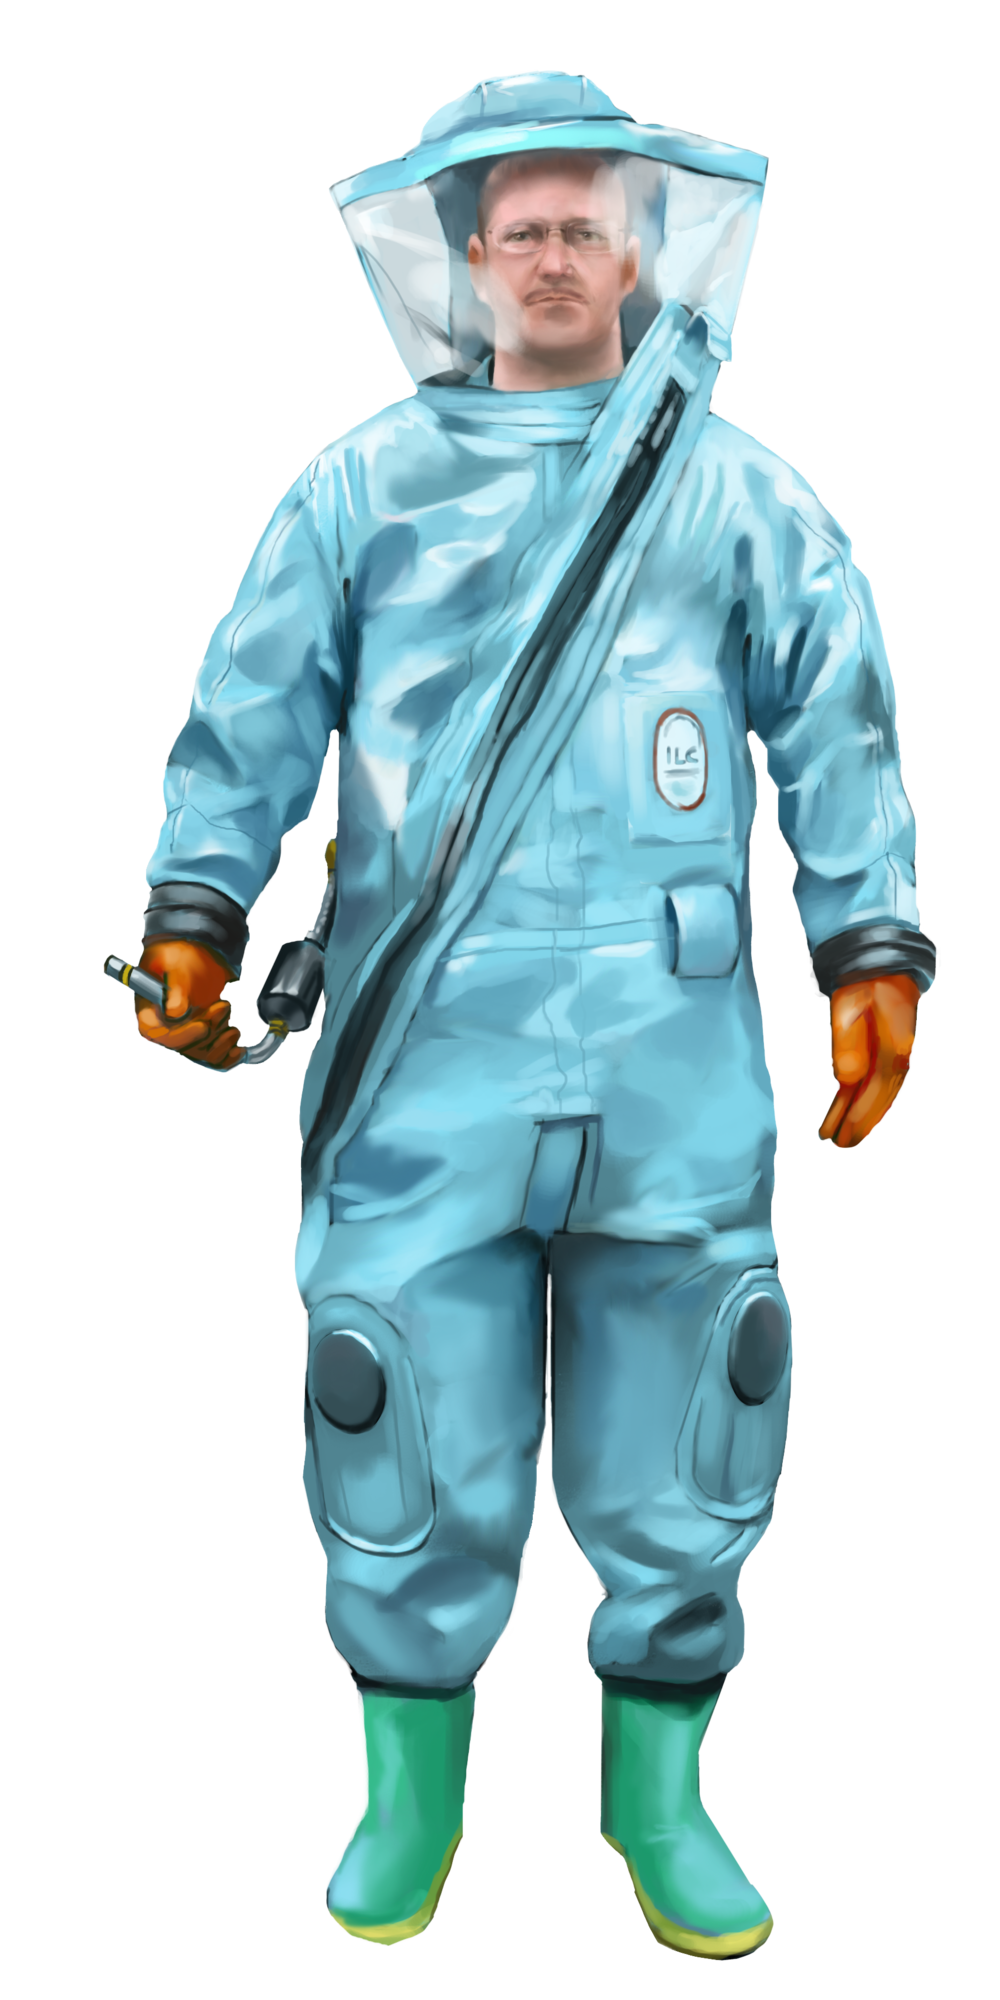 Biolevel Safety Suit